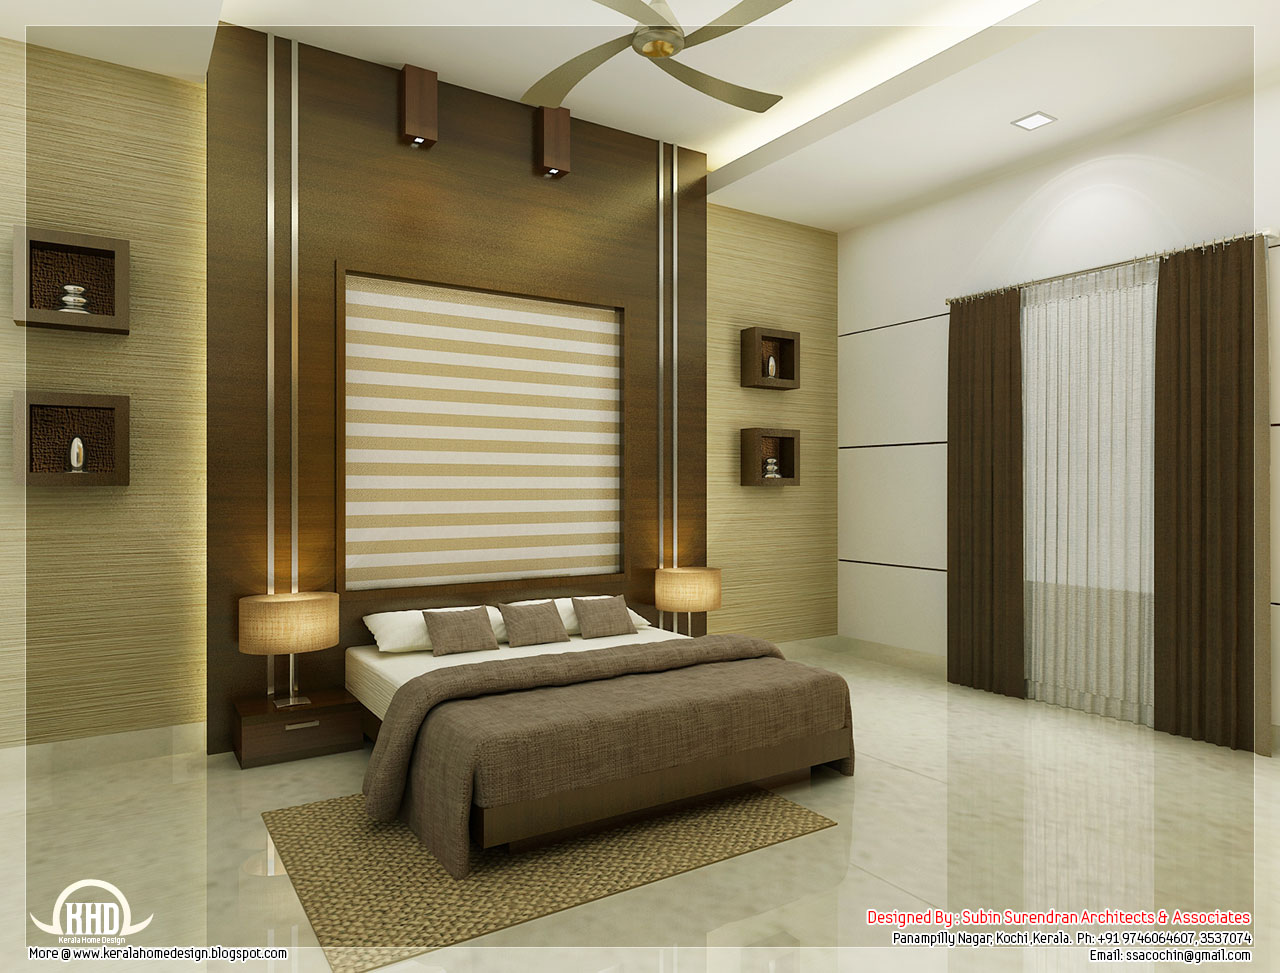 Beautiful bedroom interior designs kerala house design - Bedrooms images ...